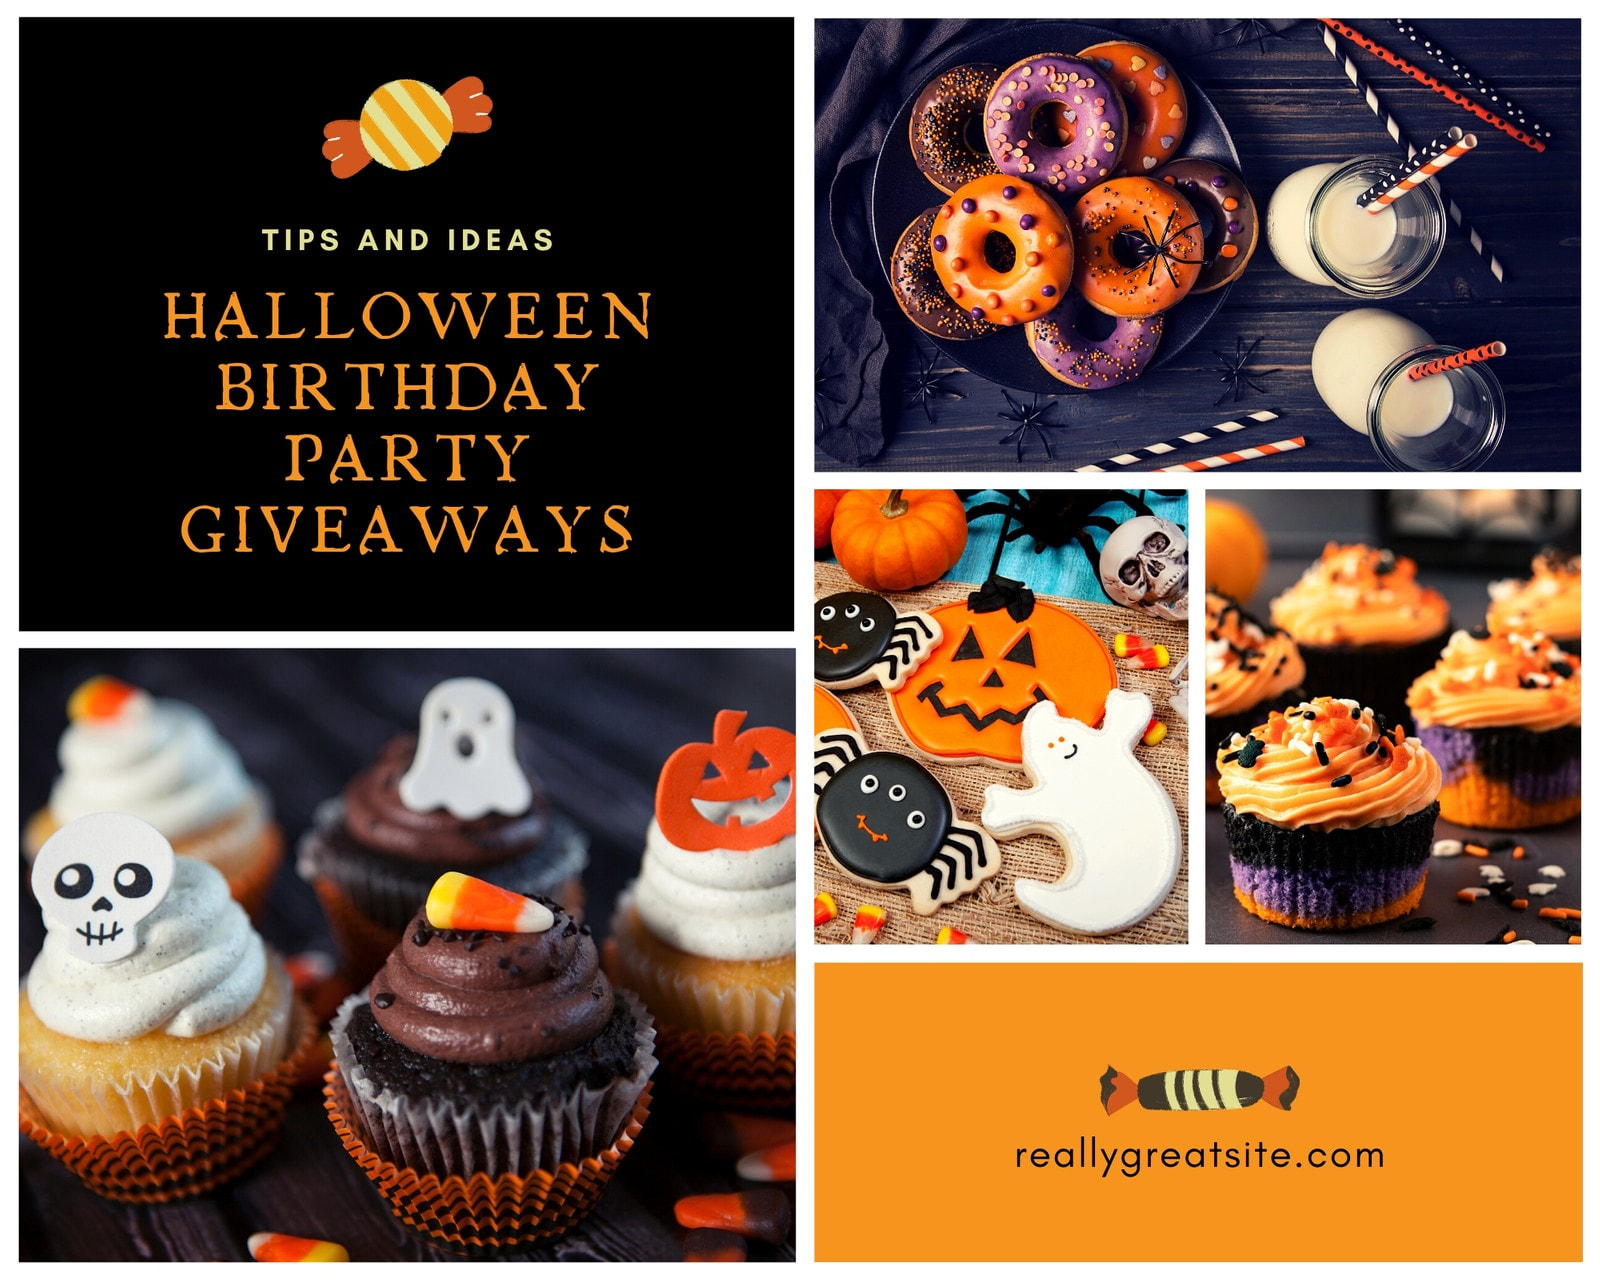 Black and Orange Sweets Halloween Birthday Party Collage